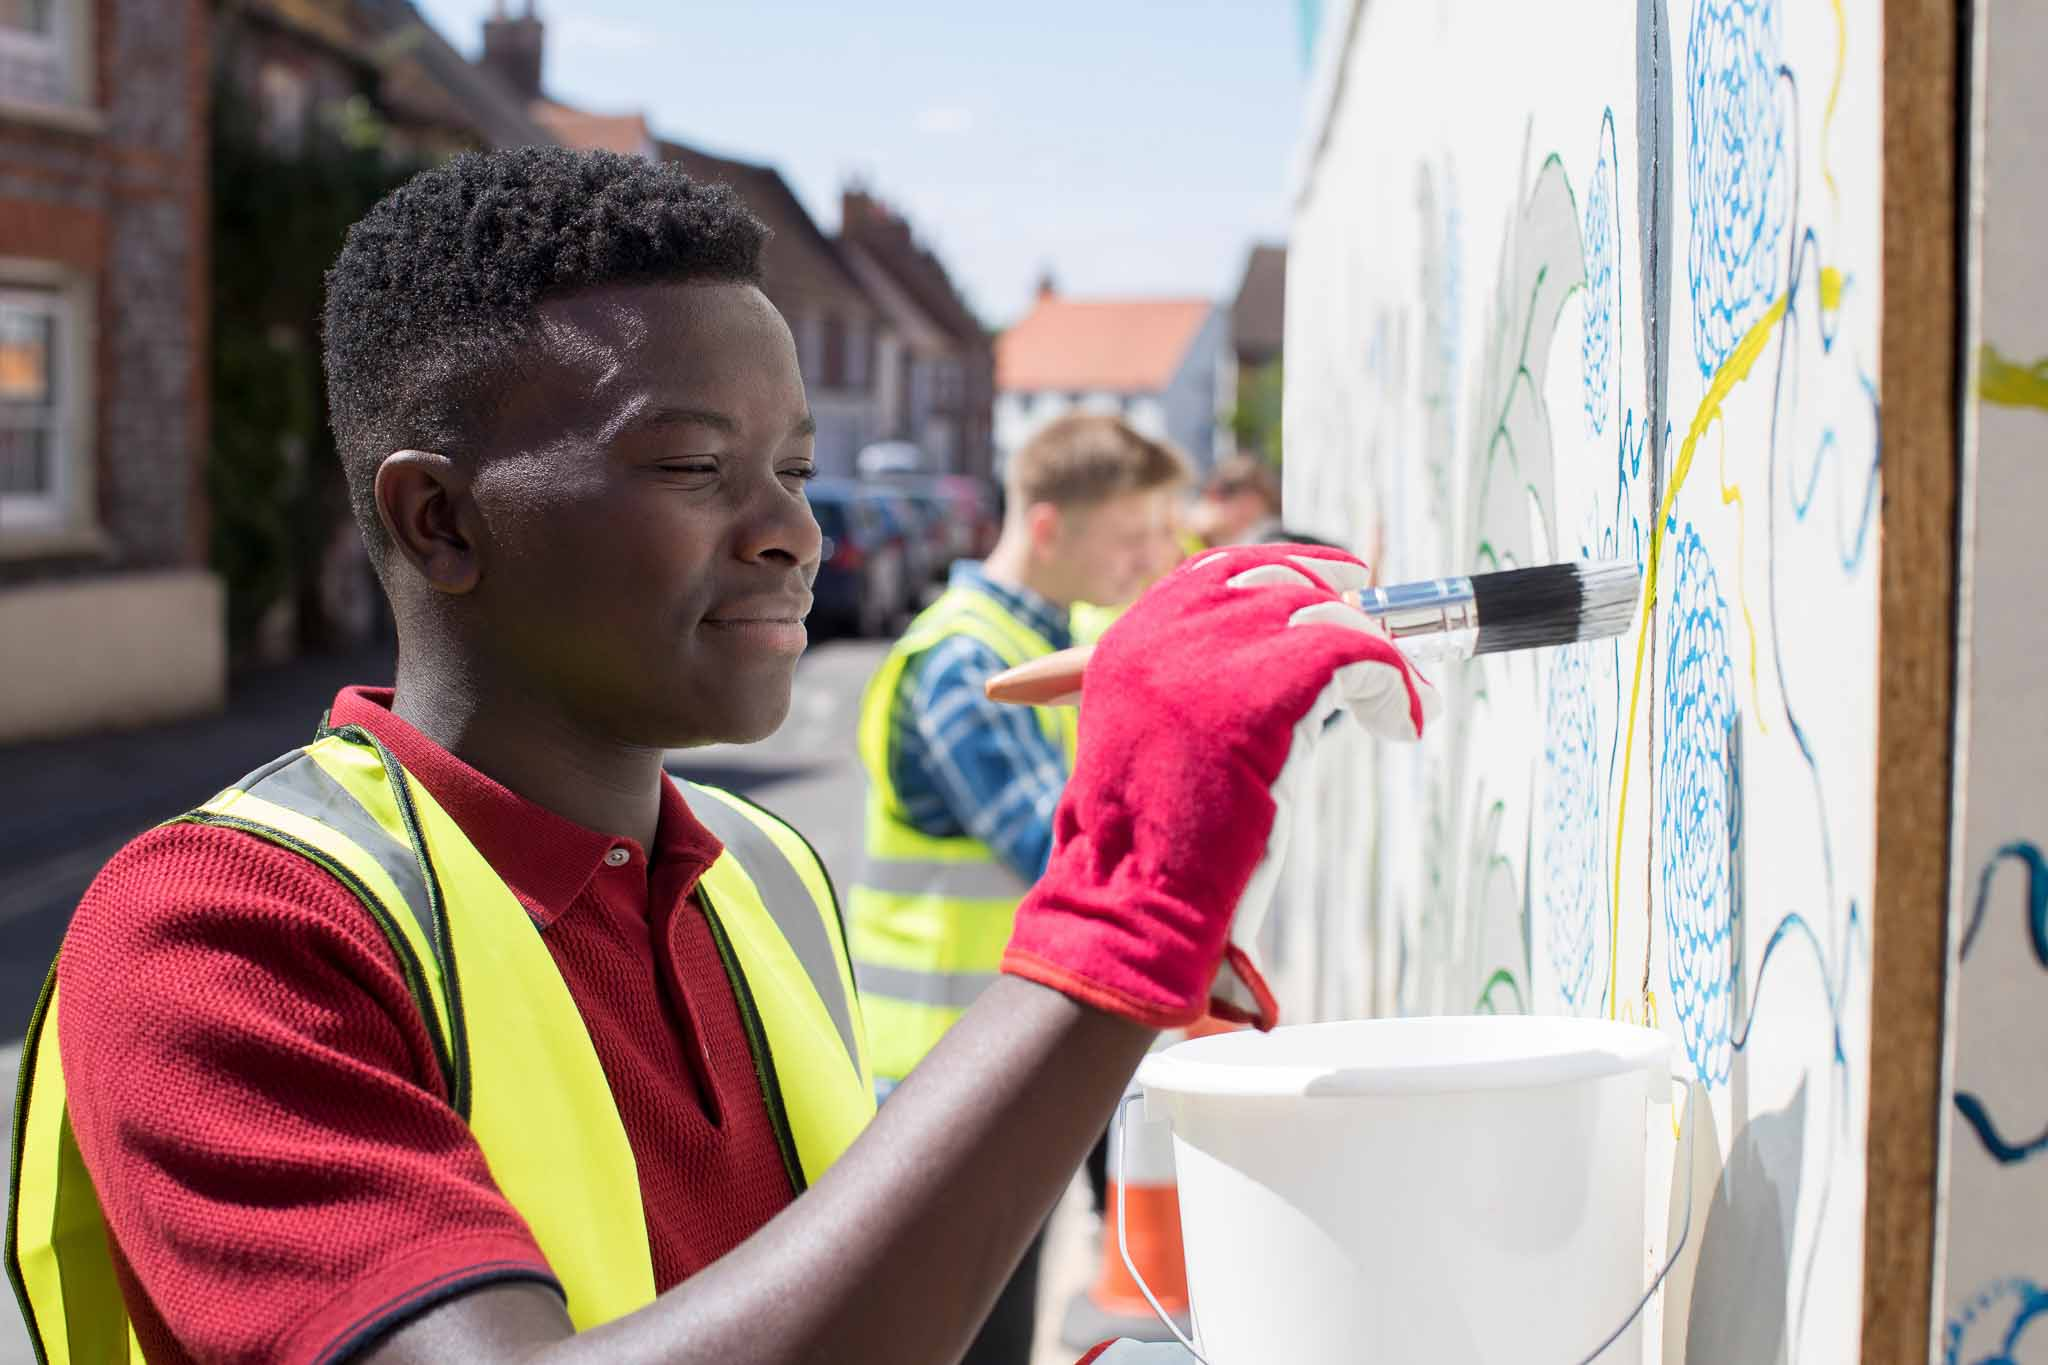 Teenagers paint a colorful mural on a sunny street, and have all the tools and gear to do the job perfectly.